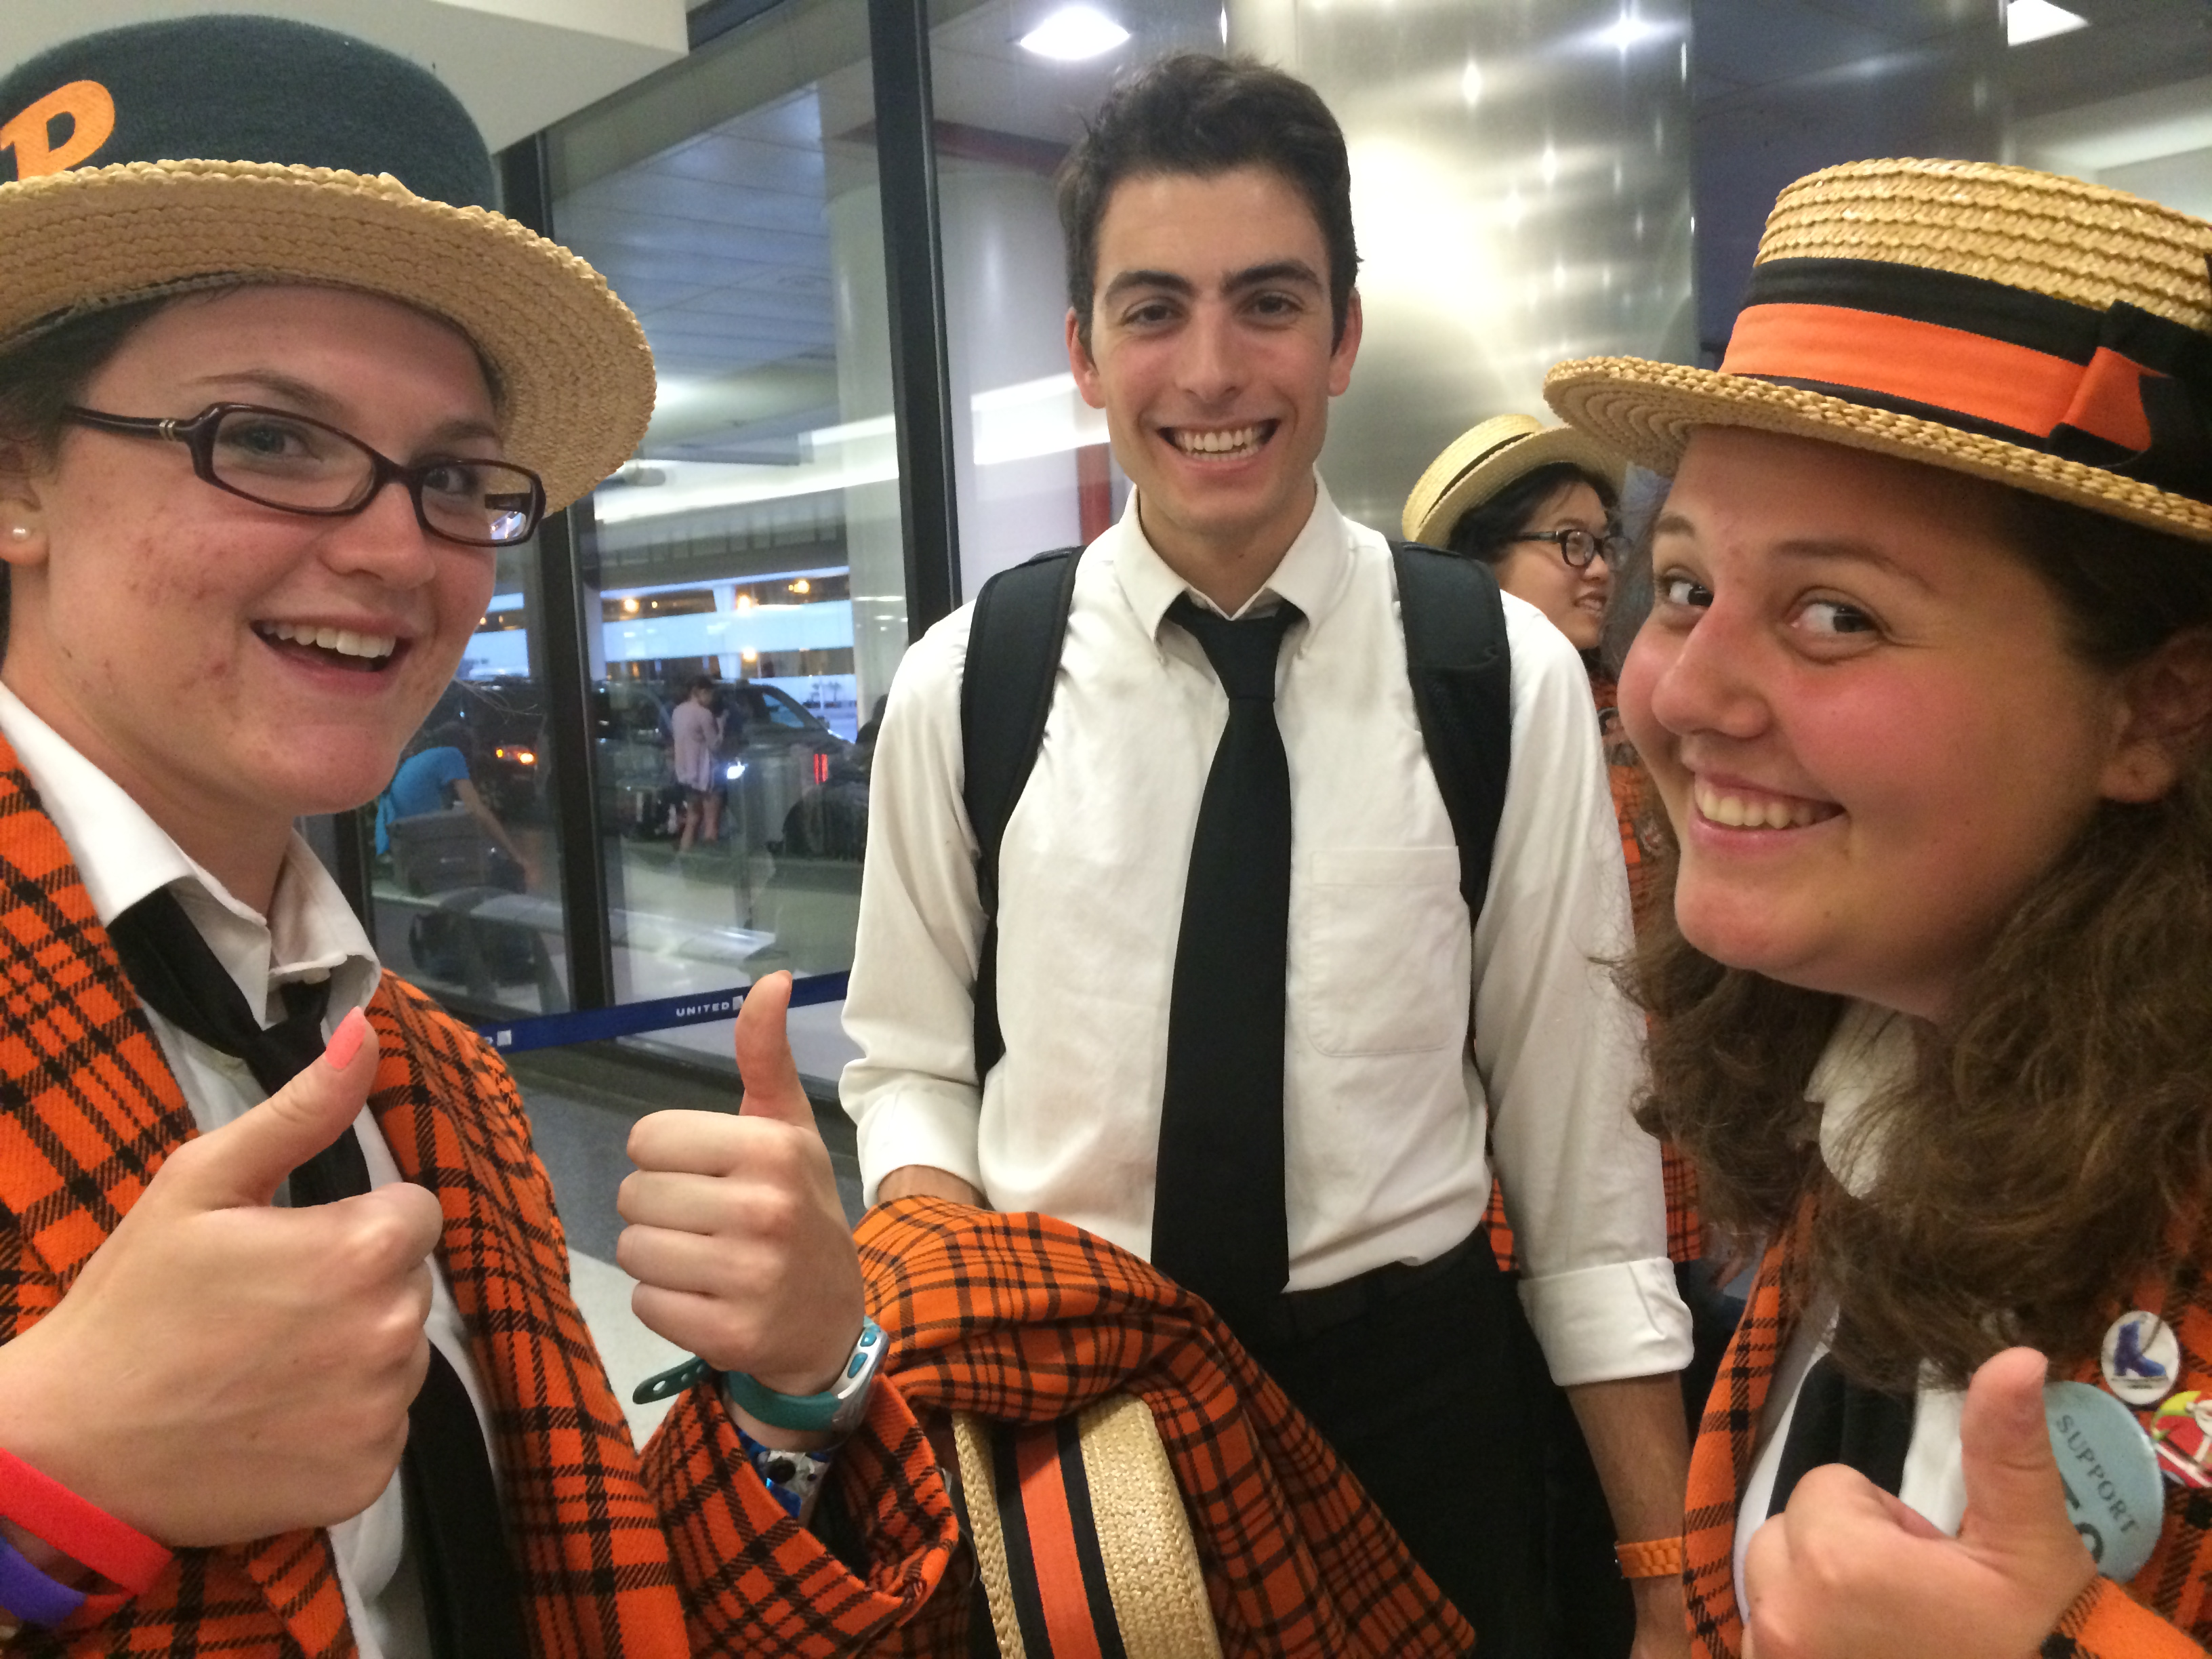 blog princeton university band megan kennedy 15 dennis smith 16 and rachel marek 17 smile